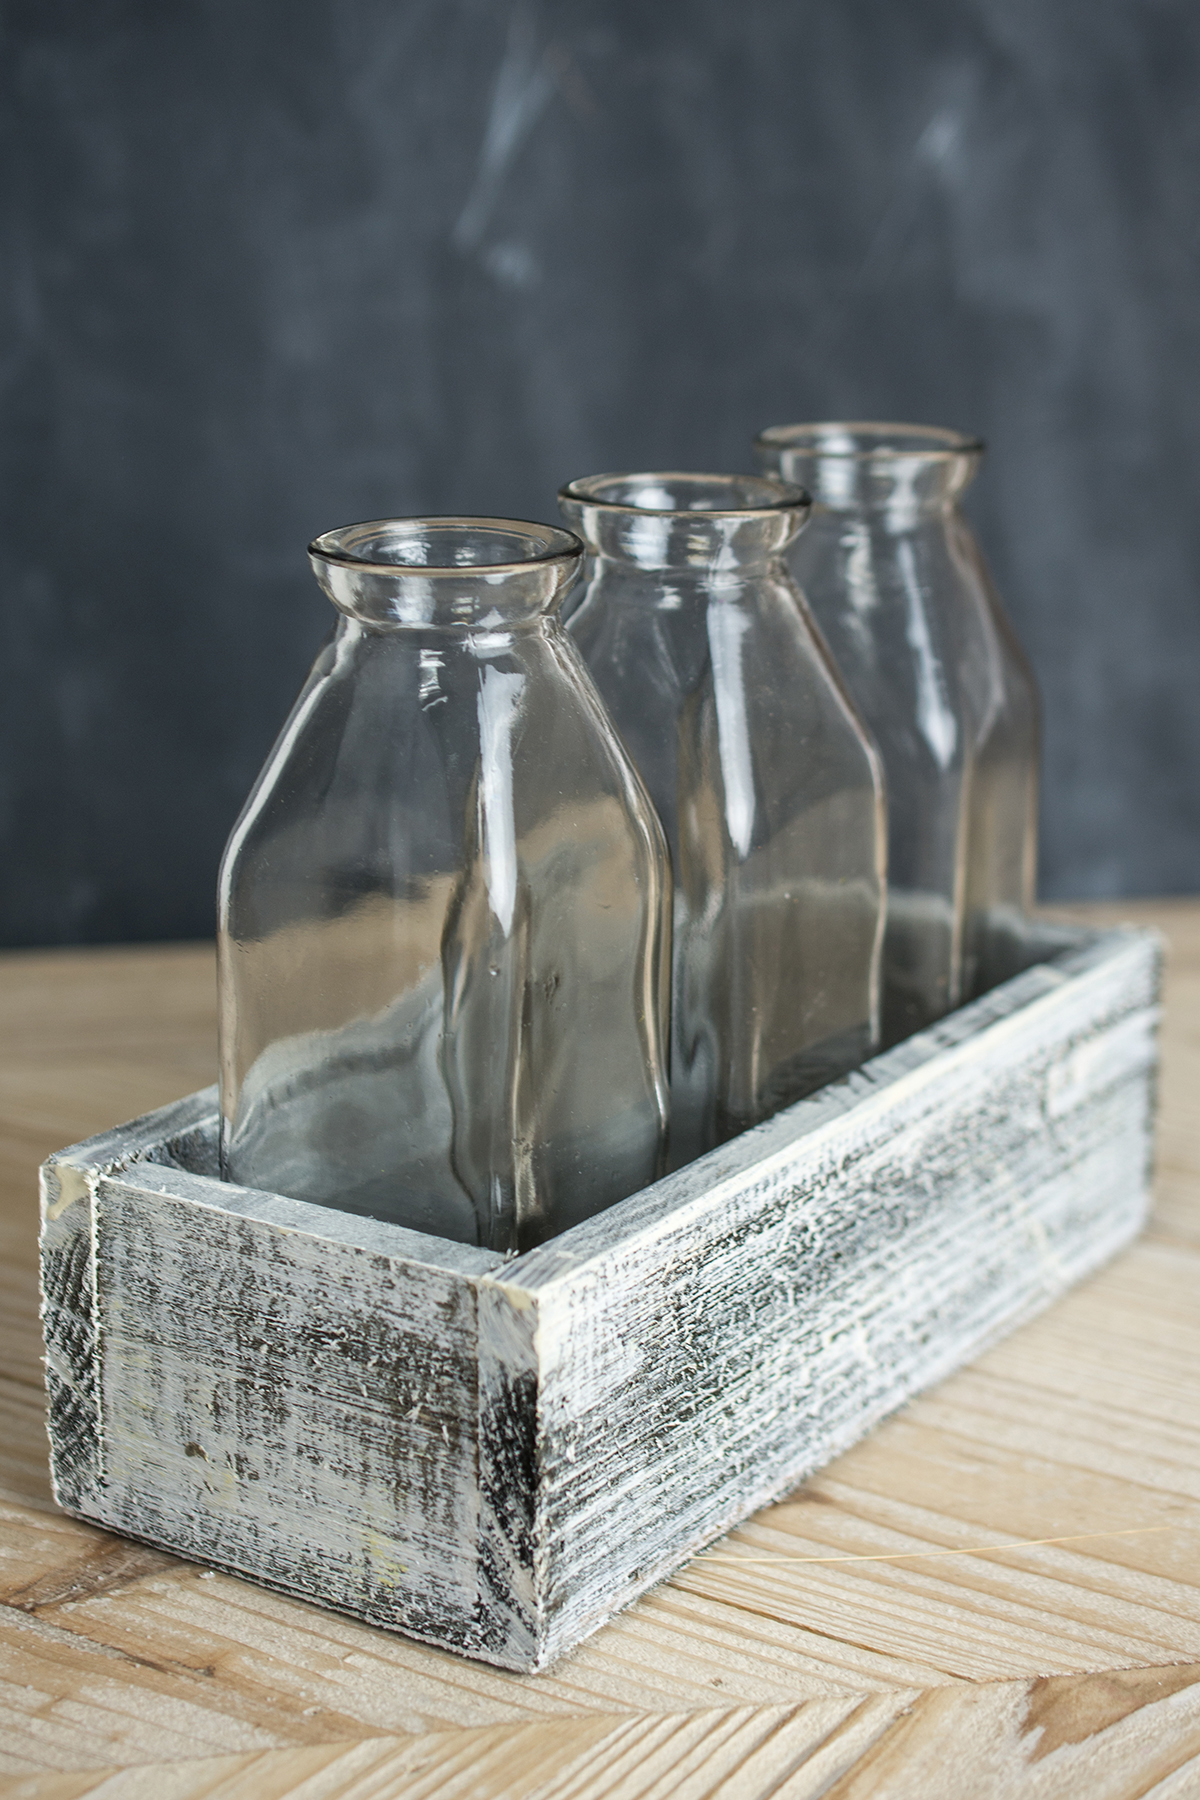 White Washed Crate with 3 Milk Bottles